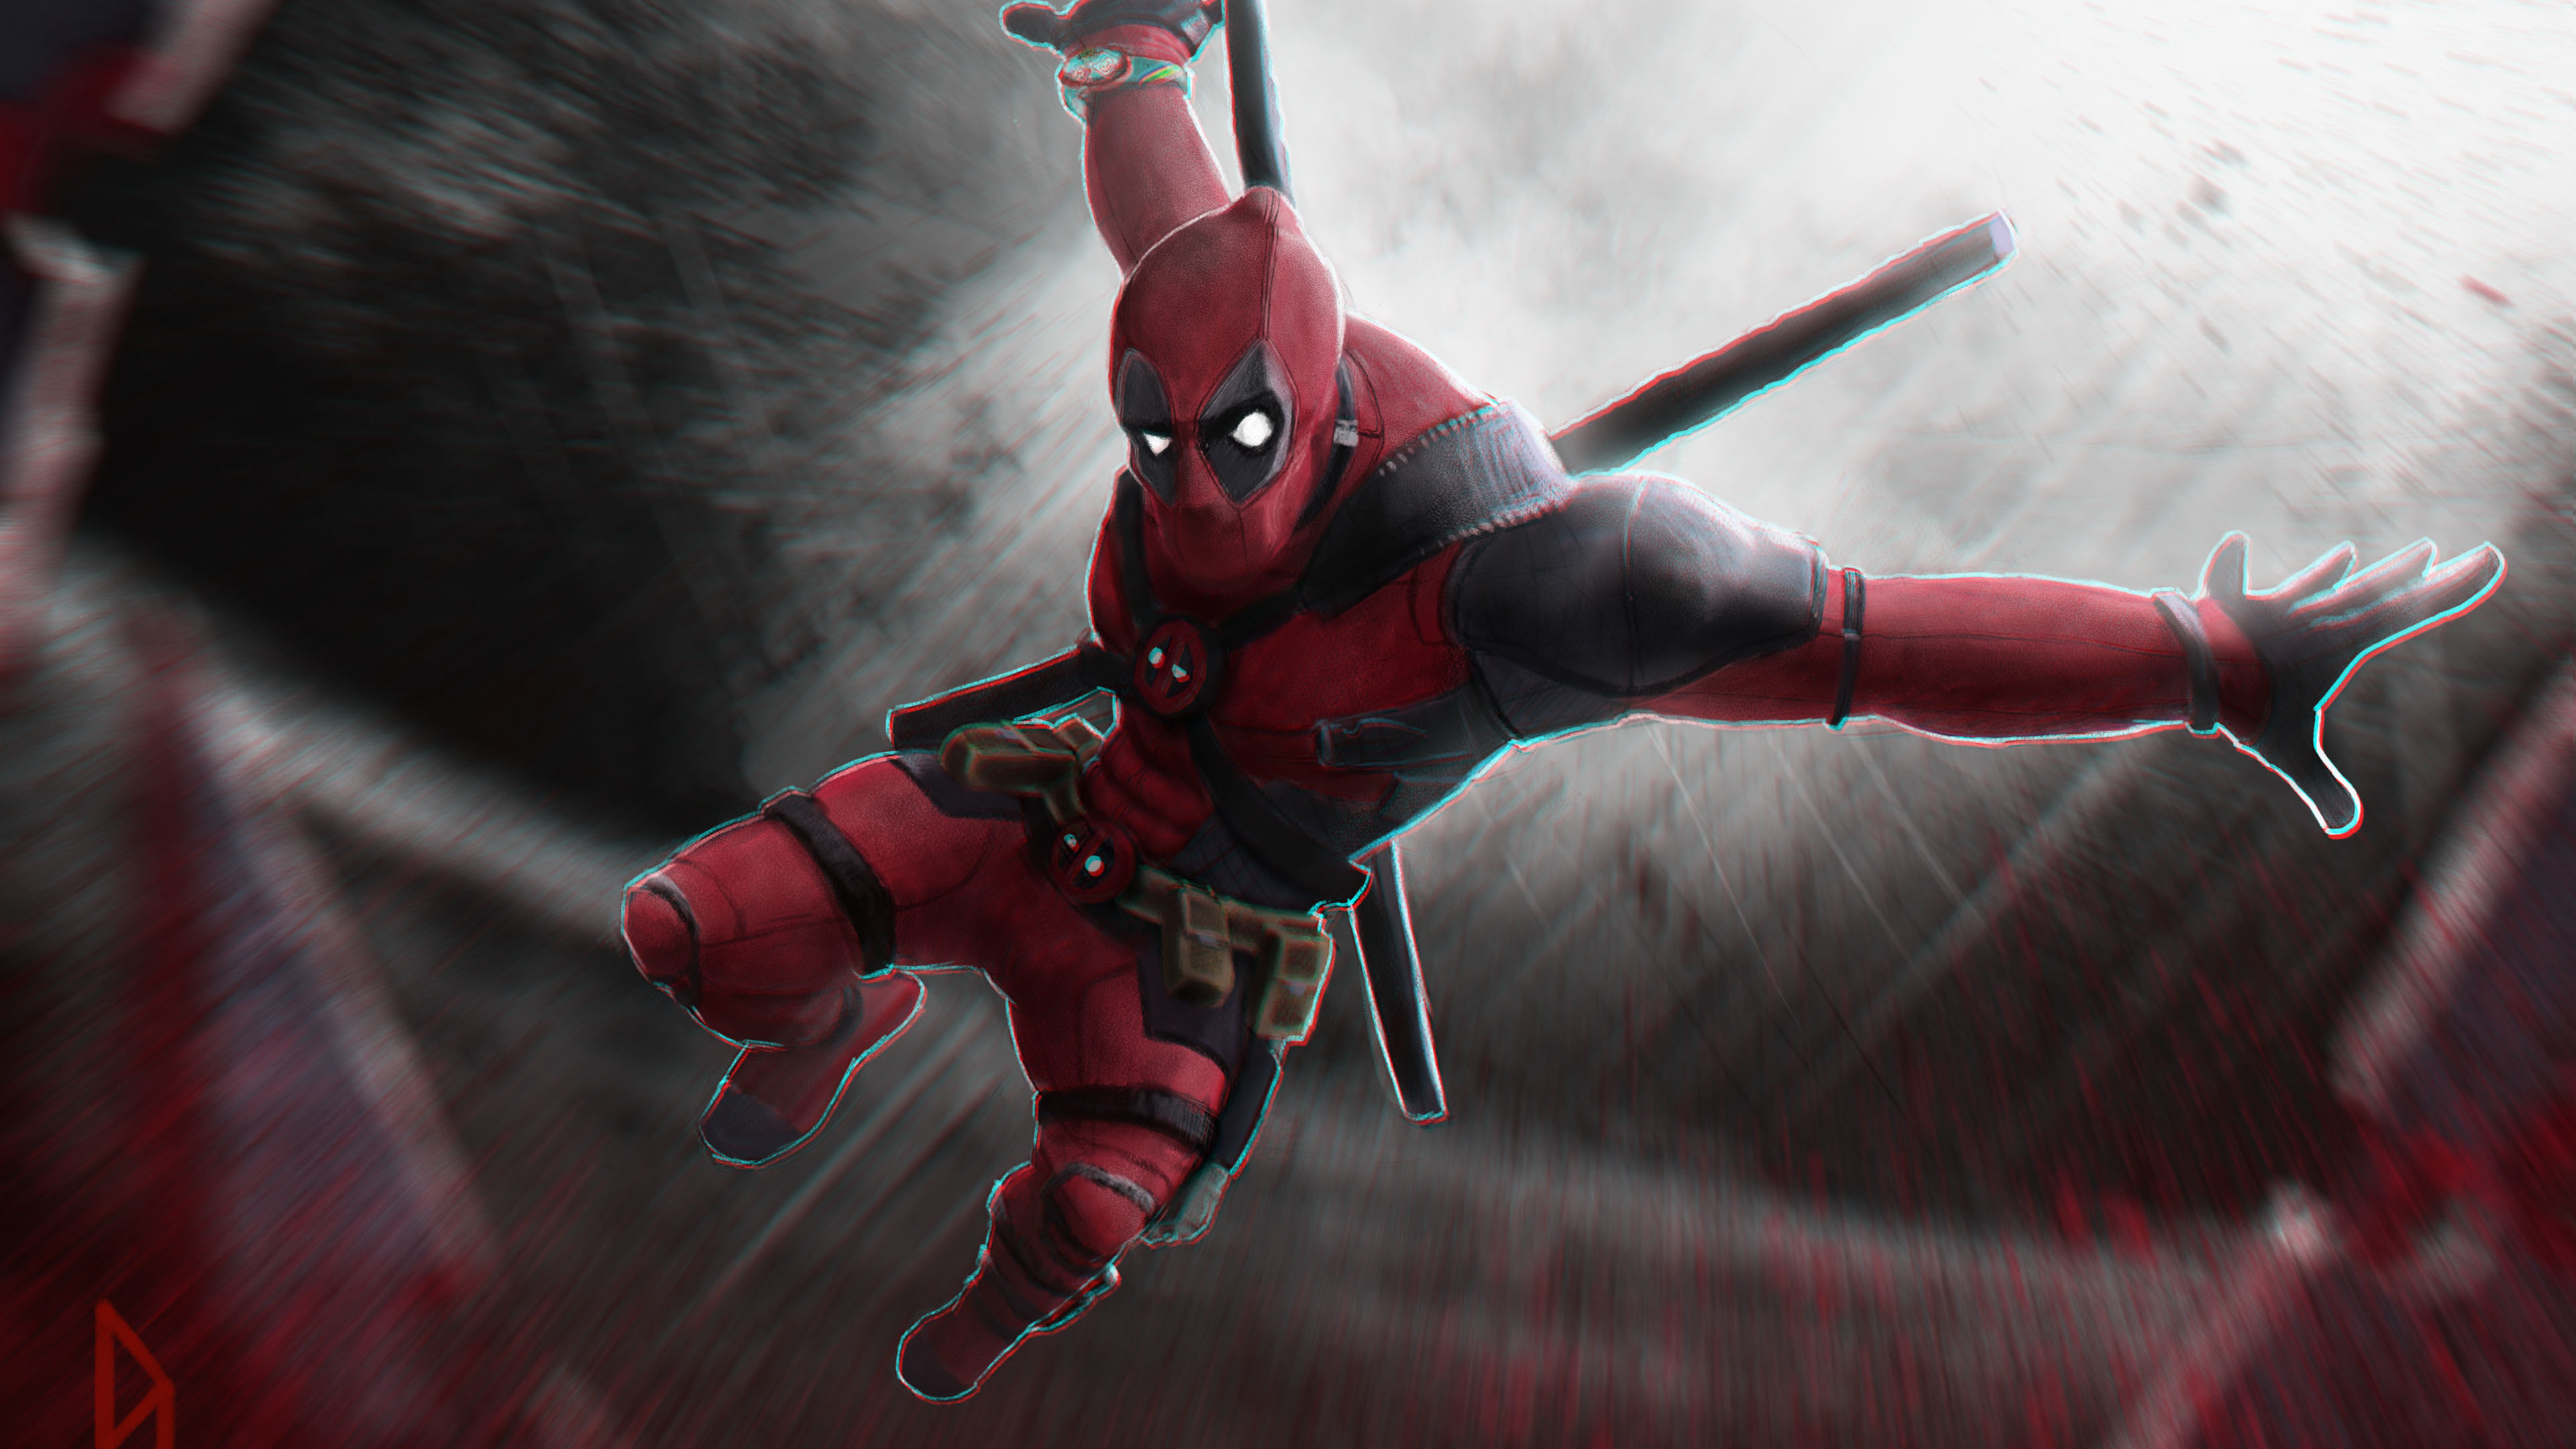 Wallpaper 4k Deadpool 4k New Art 4k Wallpapers Artist Wallpapers